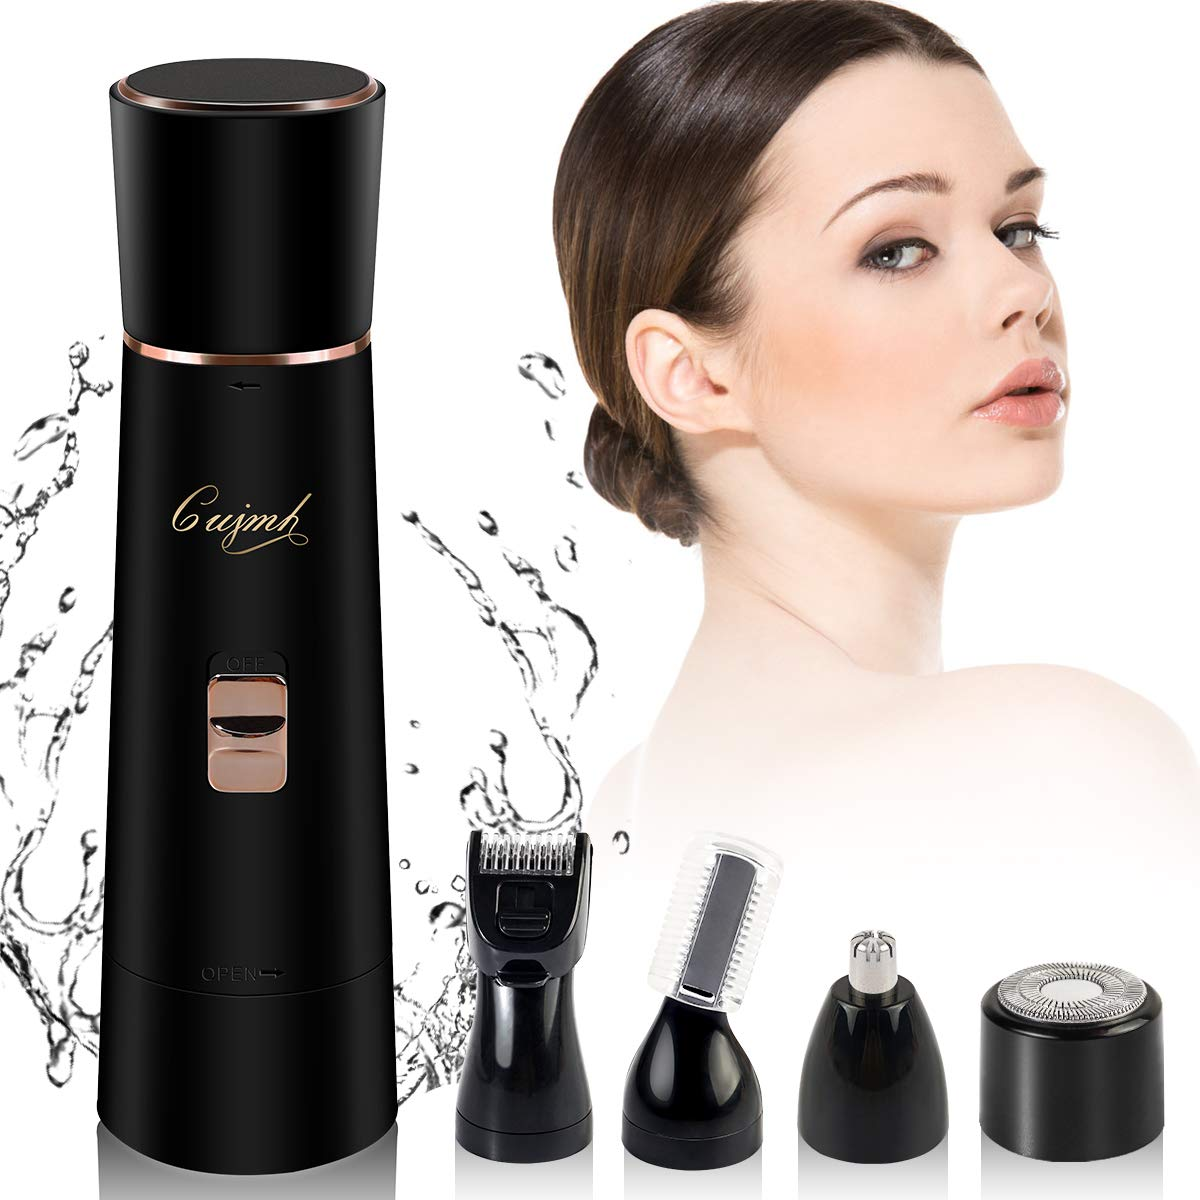 Facial Hair Removal for lady 4 in 1 Painless Electric Bikini Hair Removal Kits Included Hair Shaver Nose Trimmer Eyebrow Trimmer Body Shaver IPX6 Waterproof with USB Charging (Black)